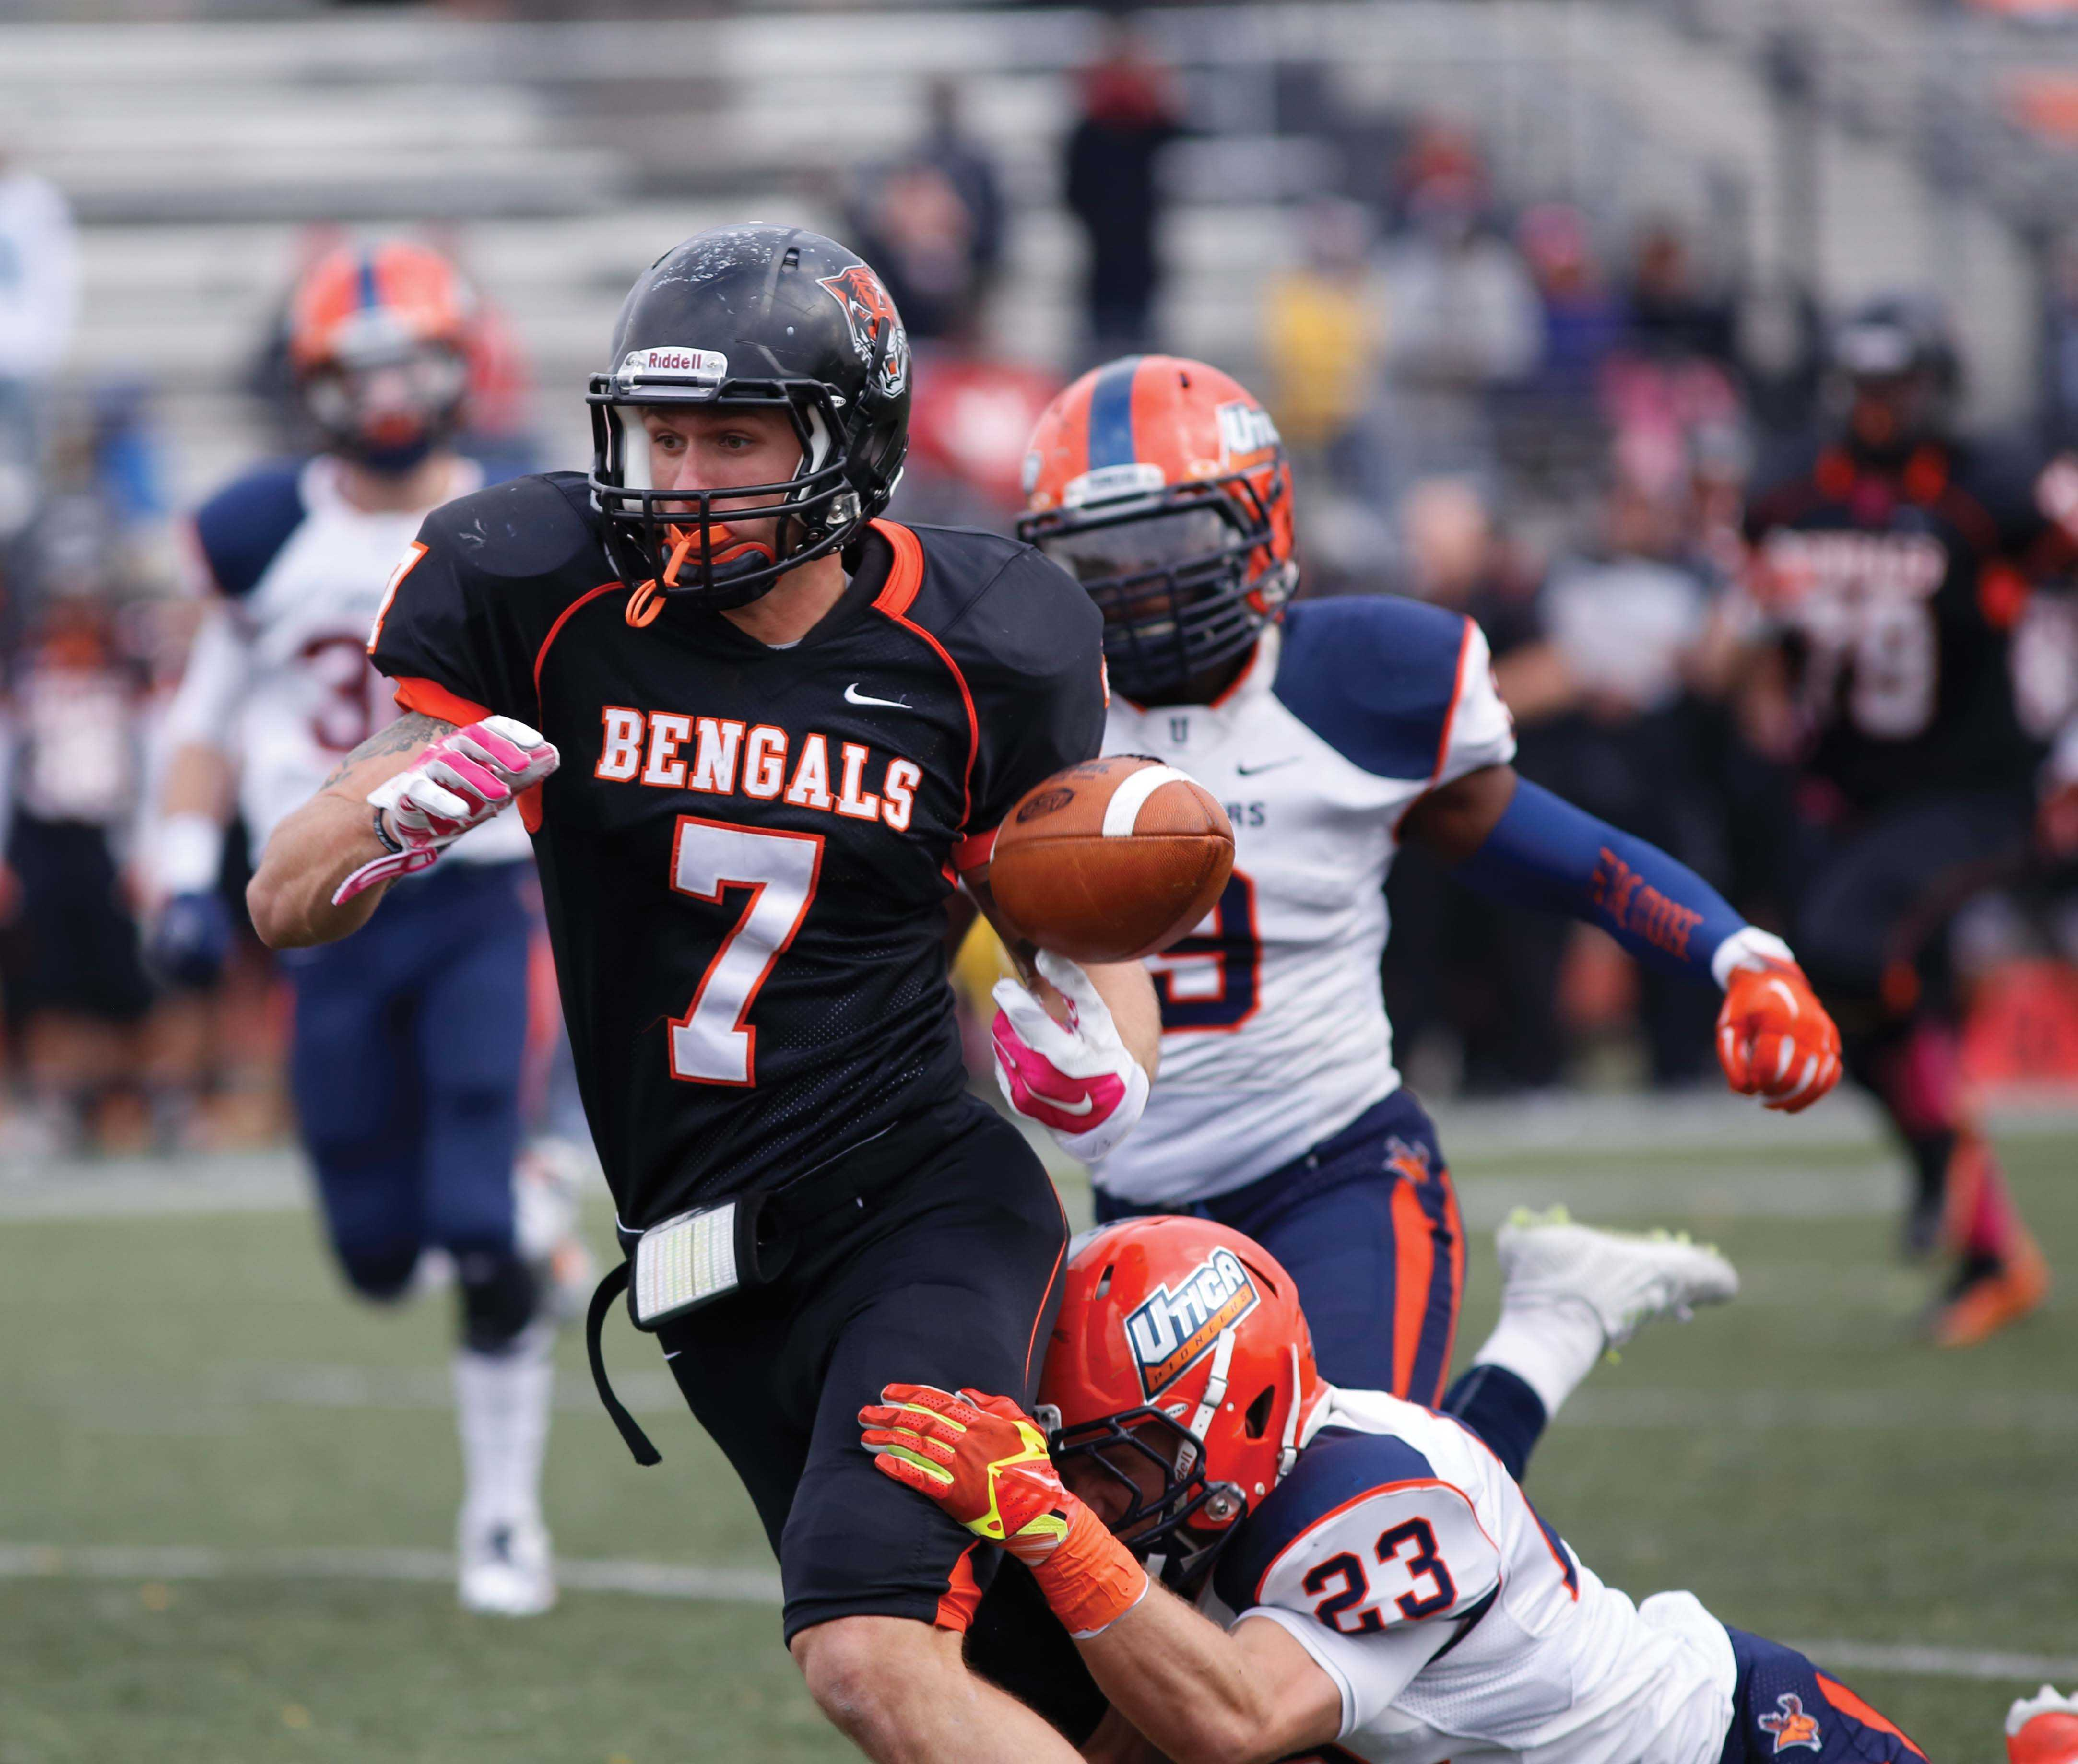 Buffalo State lost three fumbles against Utica, including Mike Doherty's (7) third-quarter fumble after a 36-yard reception. Dohery fumbled the ball on the Utica 9-yard line.